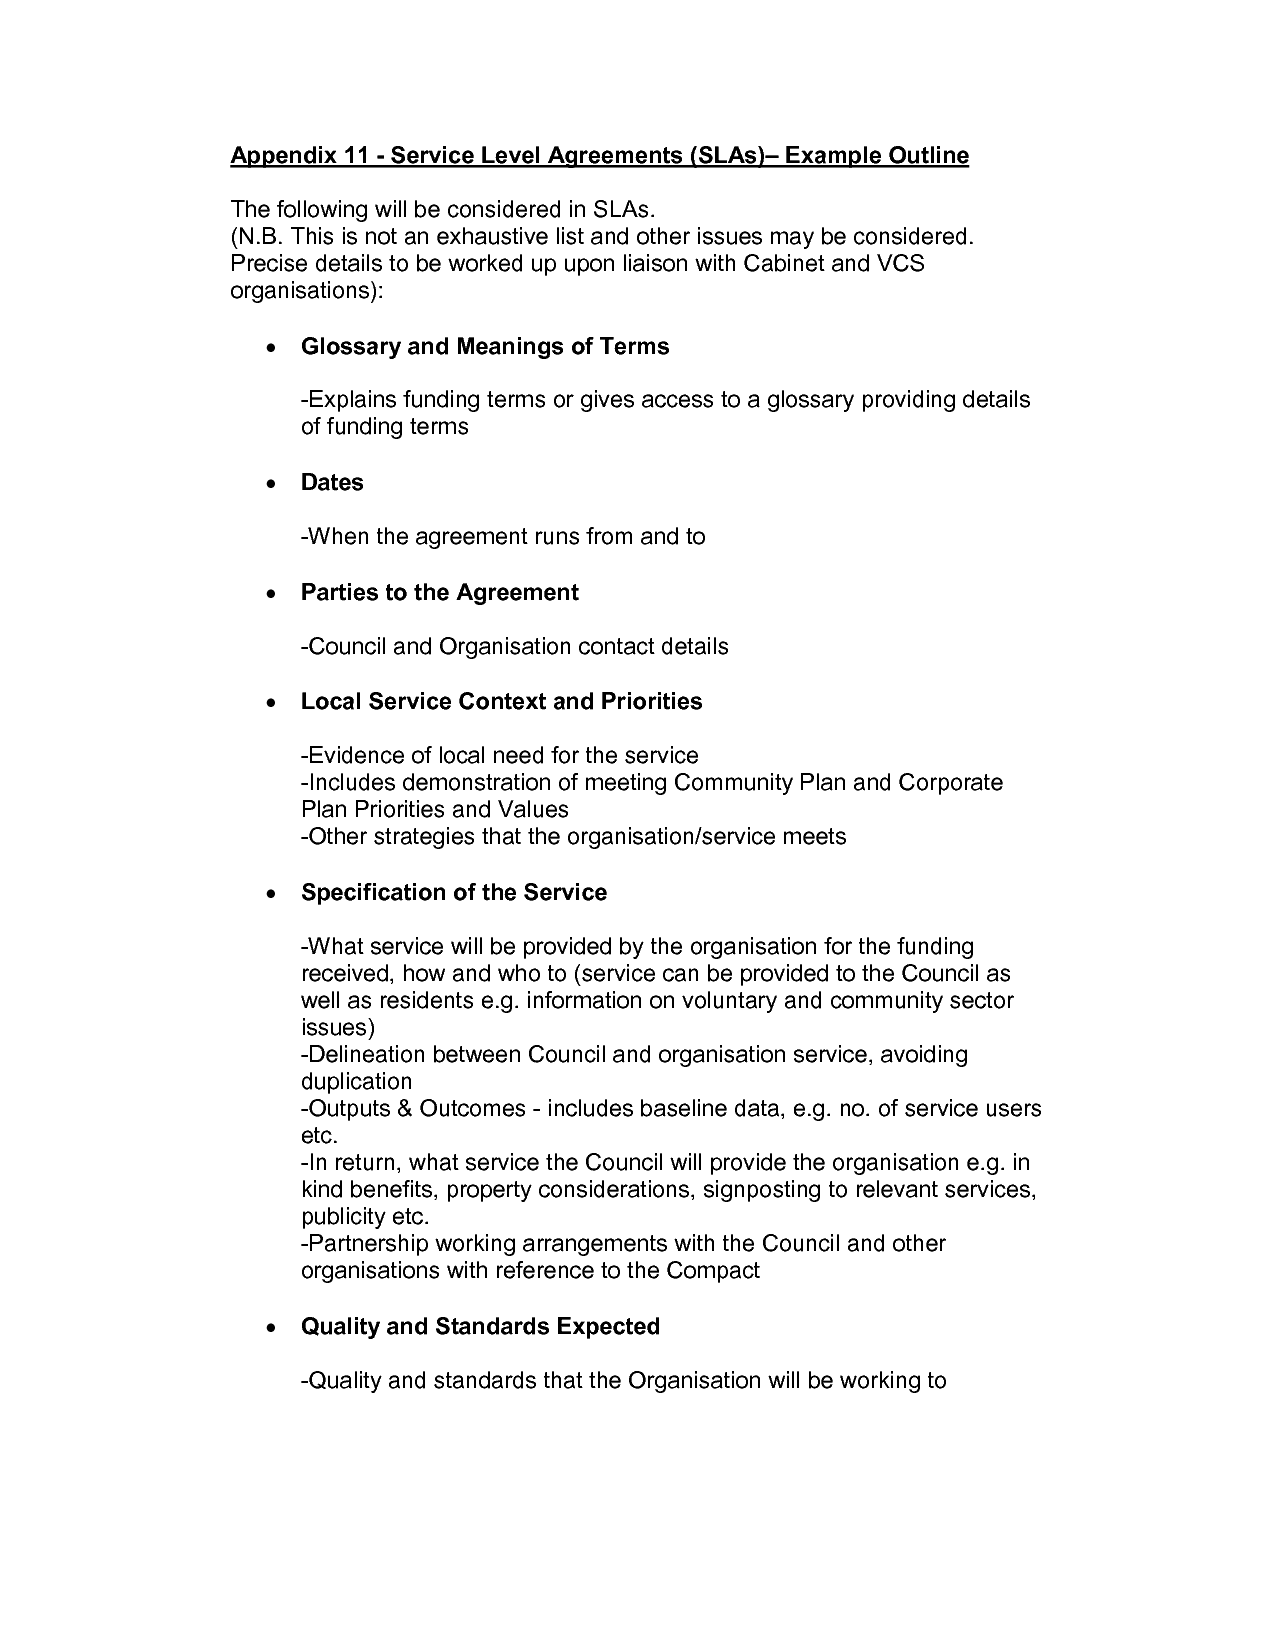 Service Level Agreement Checklist  Appendix Service Level